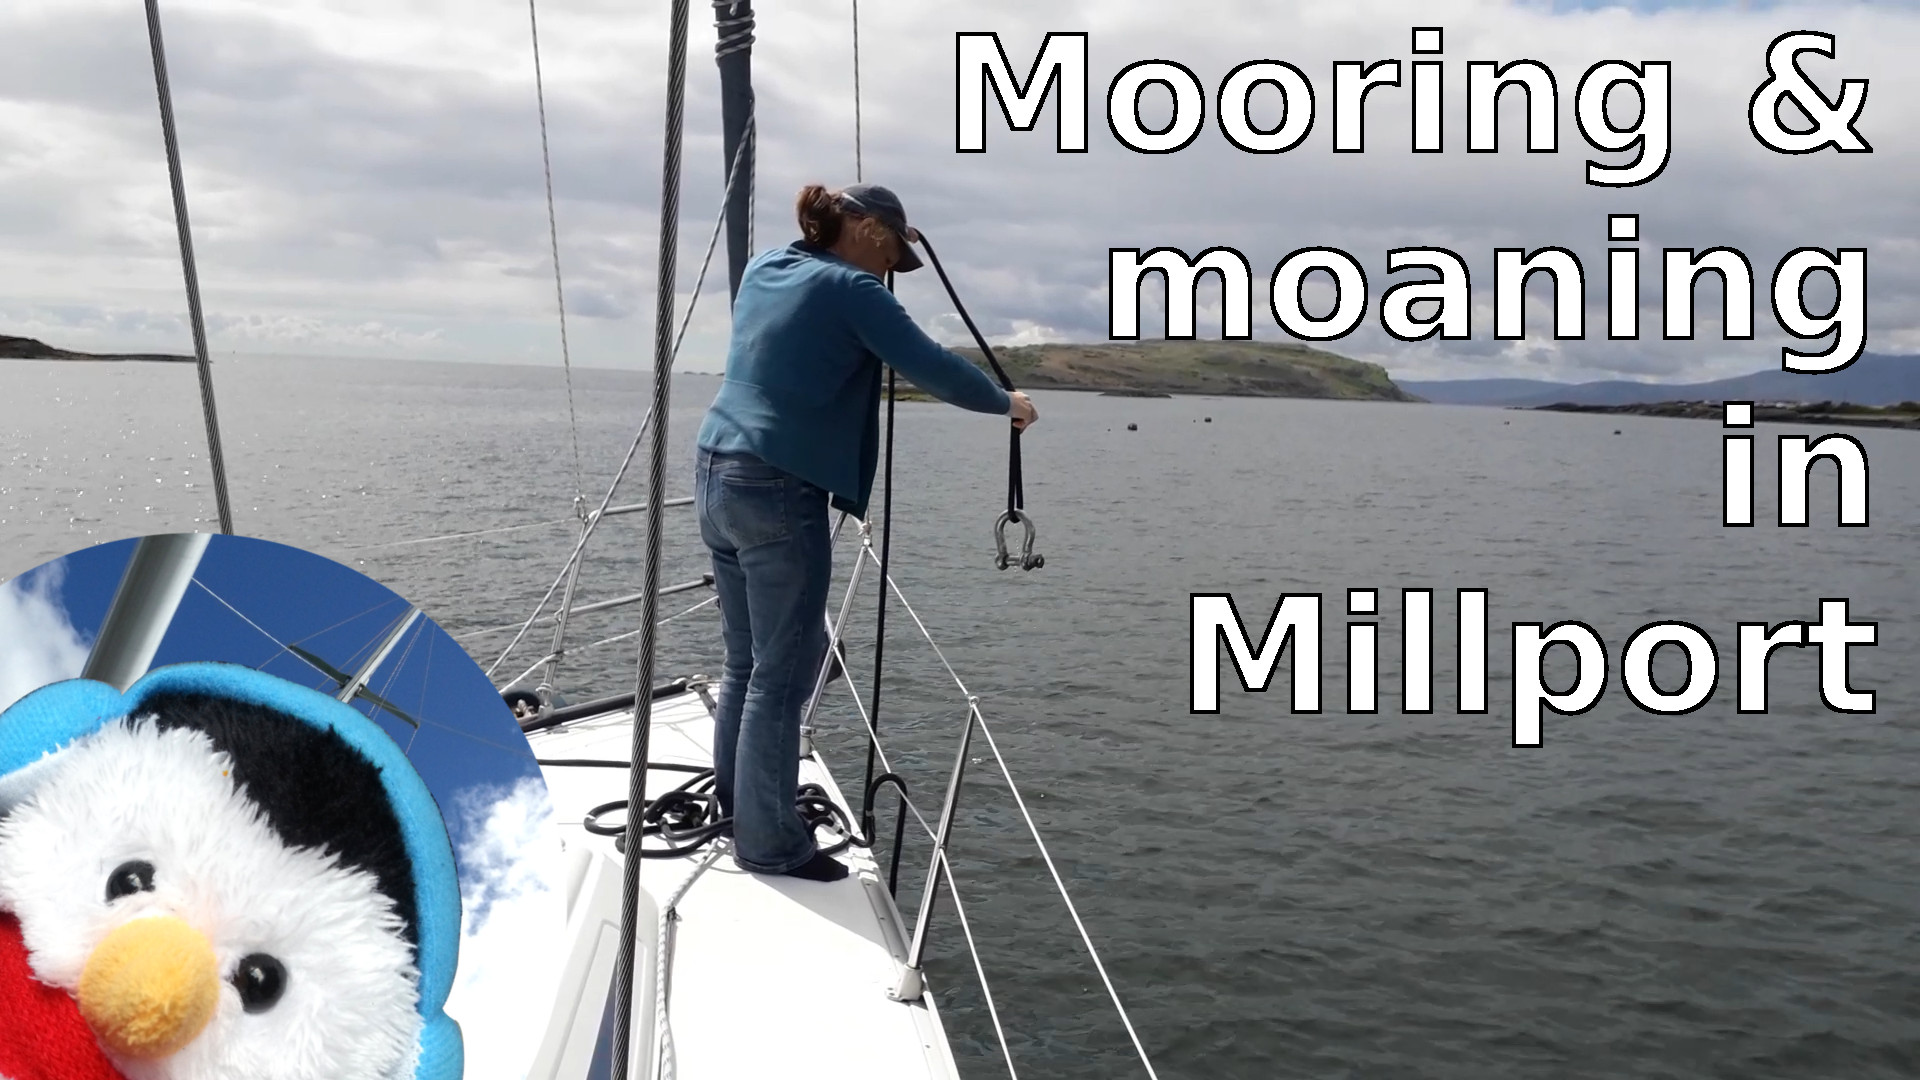 """Watch oor """"Mooring and Moaning in Millport"""" video and add comments"""